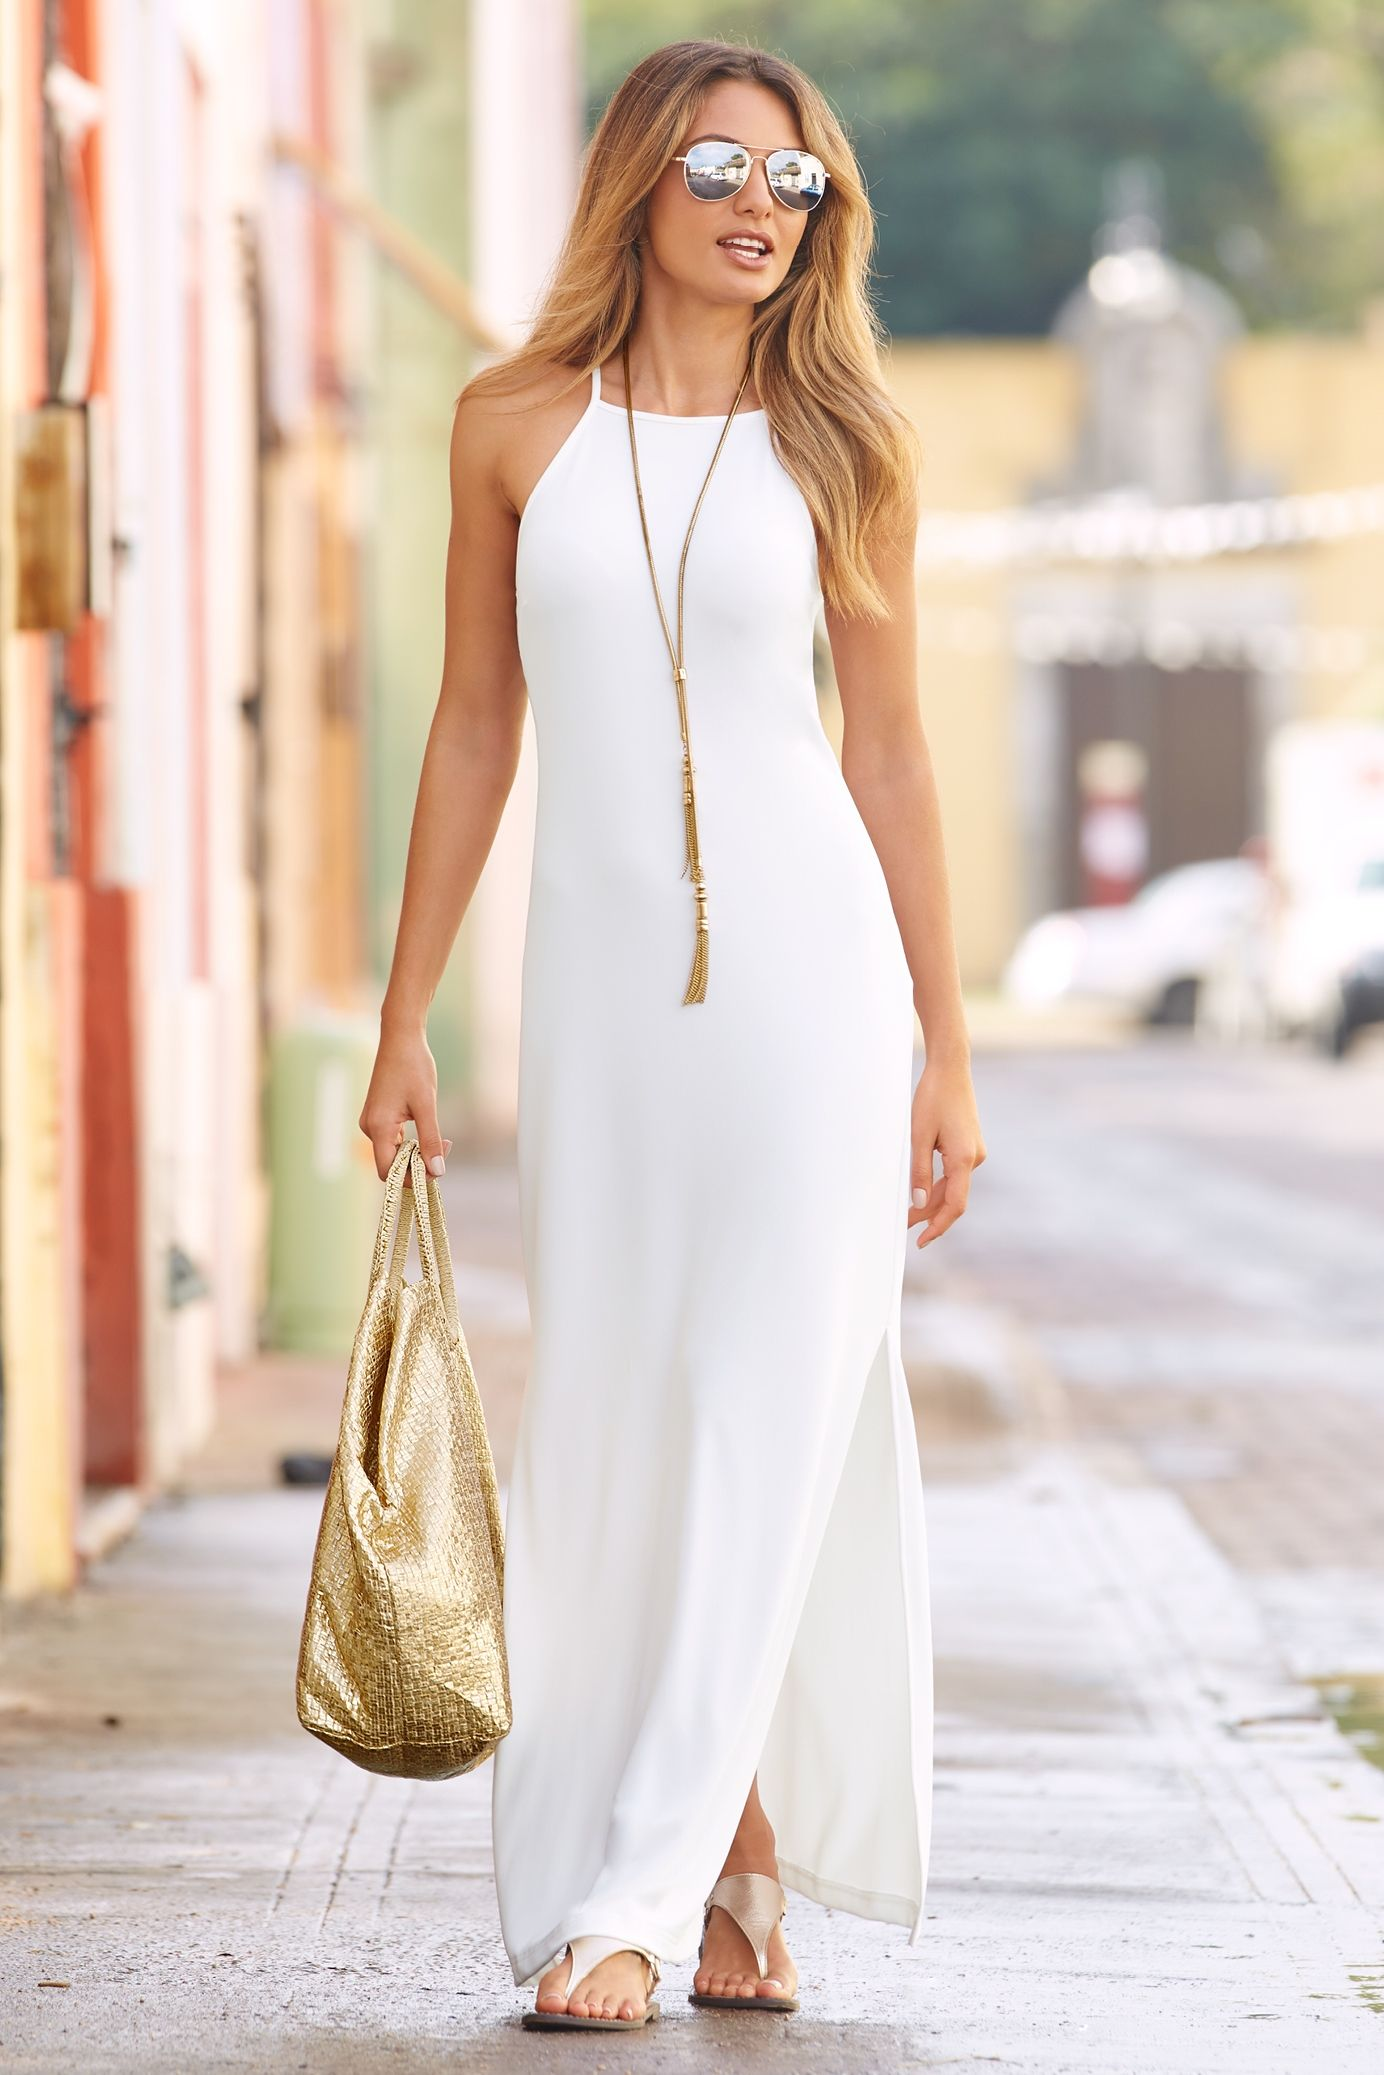 White summer dresses for women photo best photo